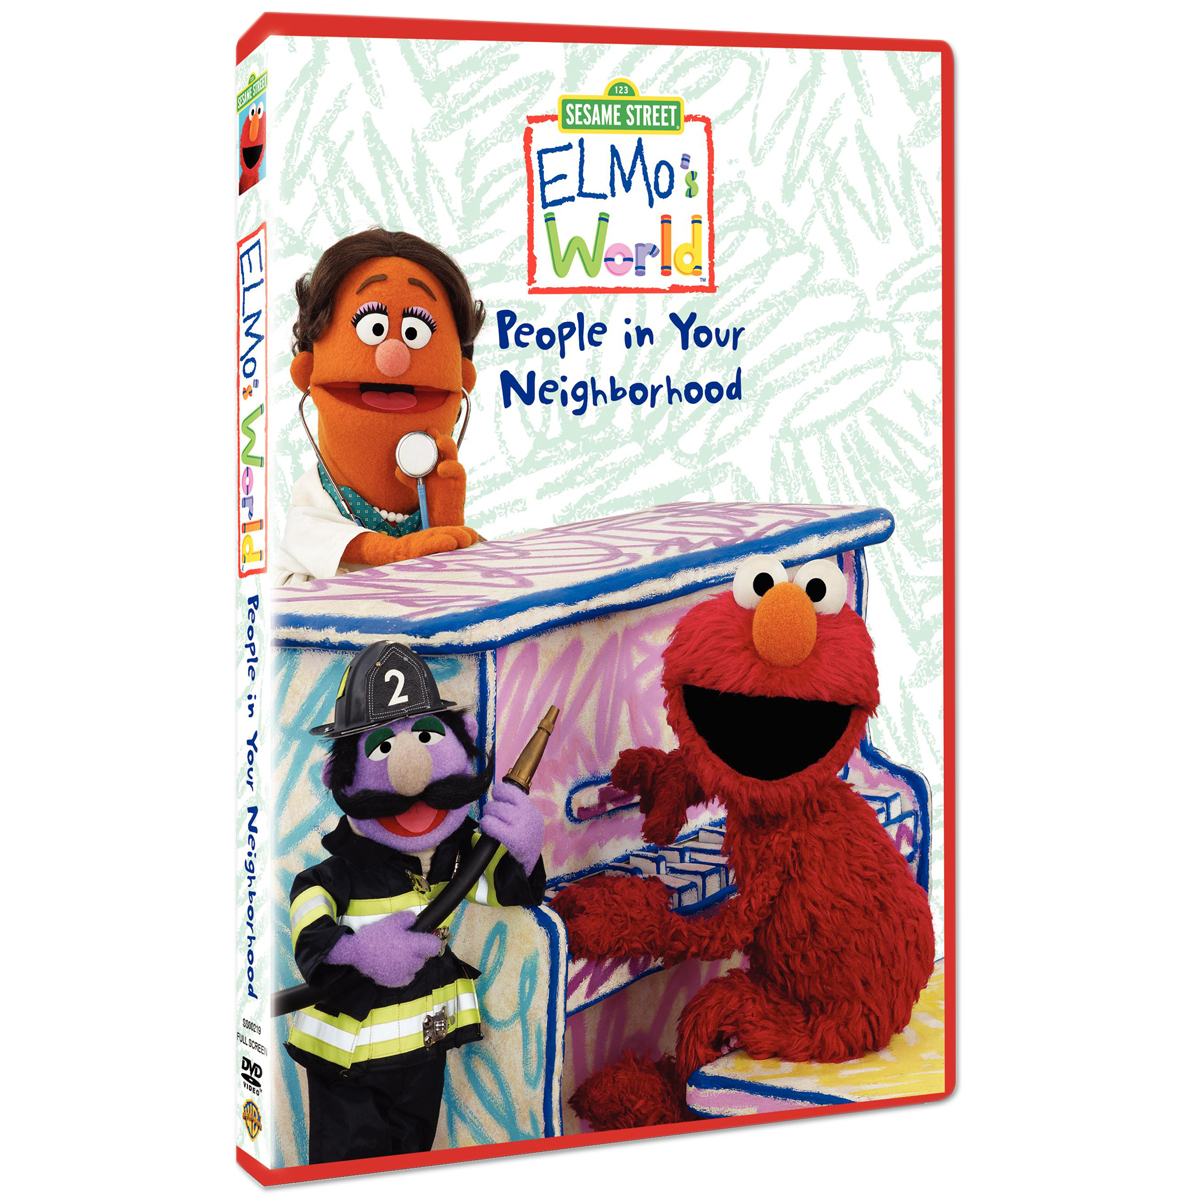 Elmo's World: People in Your Neighborhood DVD